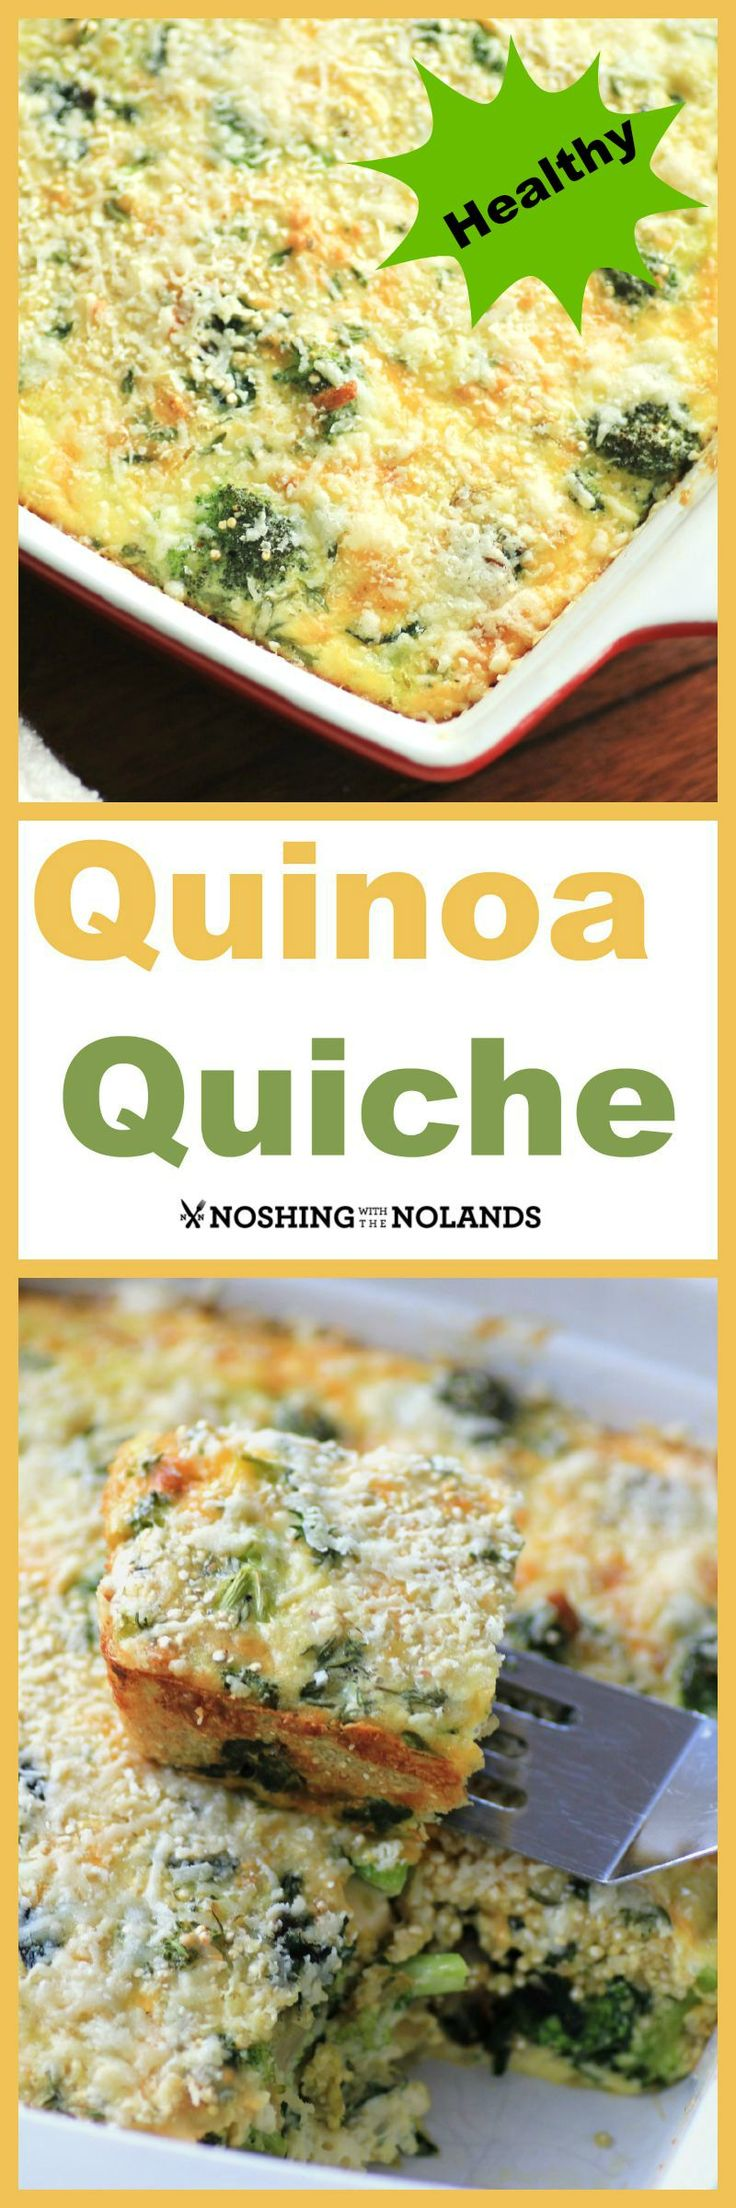 Vegetable Quinoa Quiche Recipe, from Noshing with the Nolands - Perfect for brunch or a meatless meal, this healthy recipe is packed with protein.